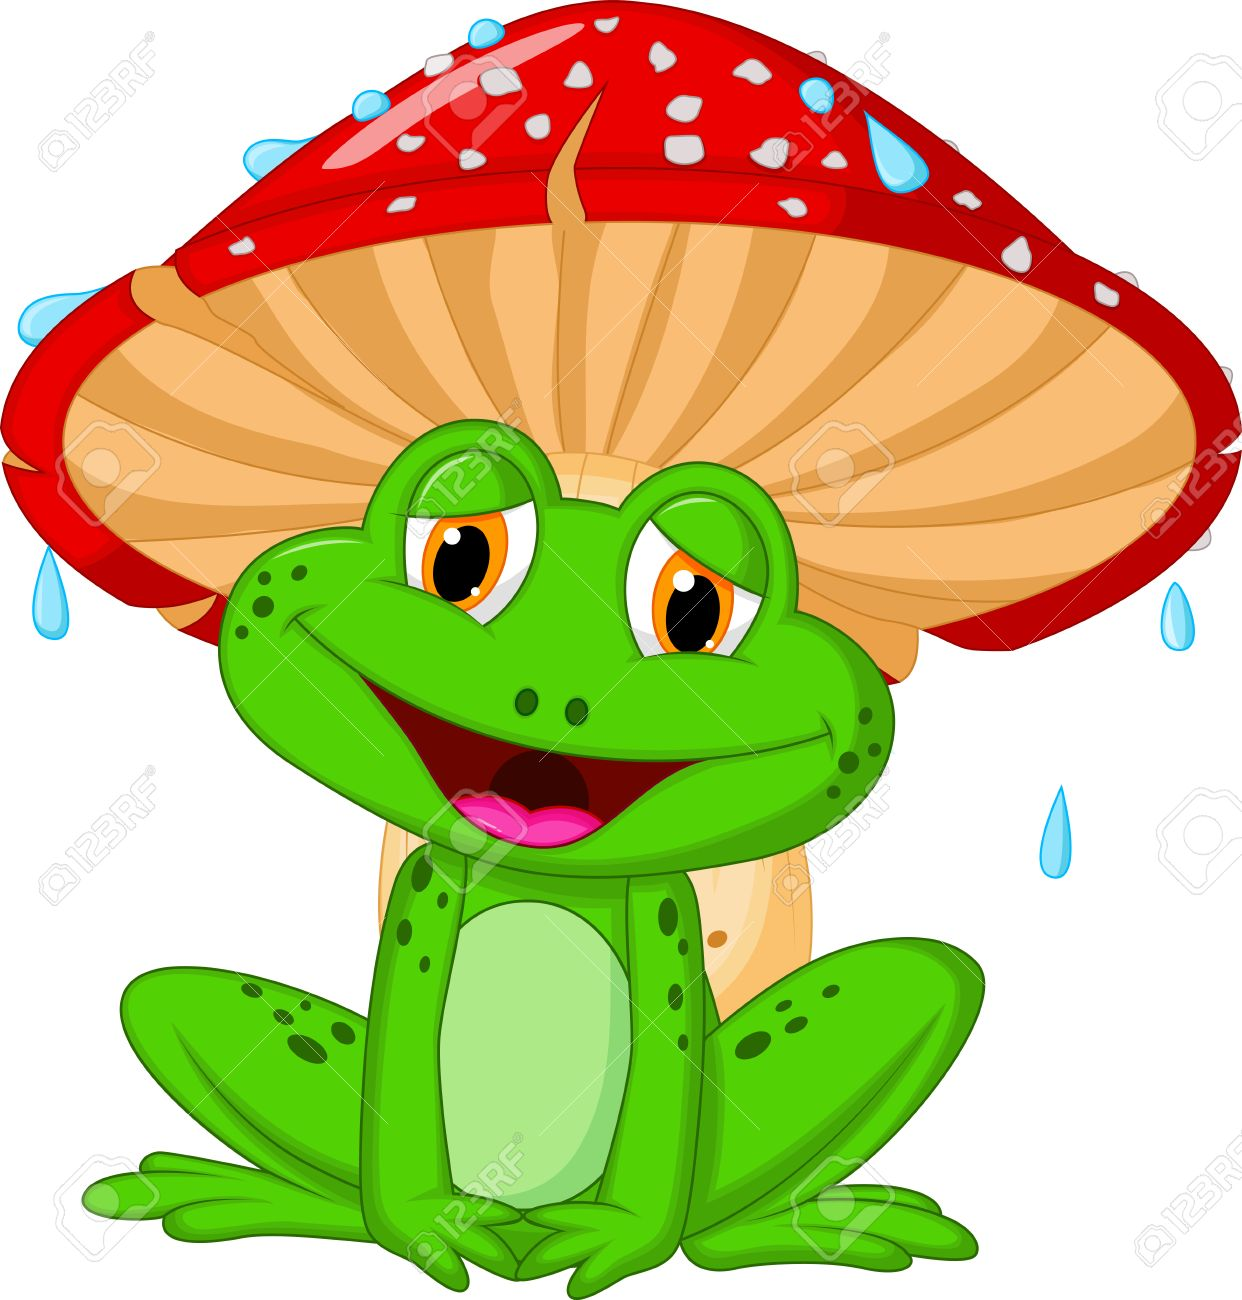 Image result for april shower clipart